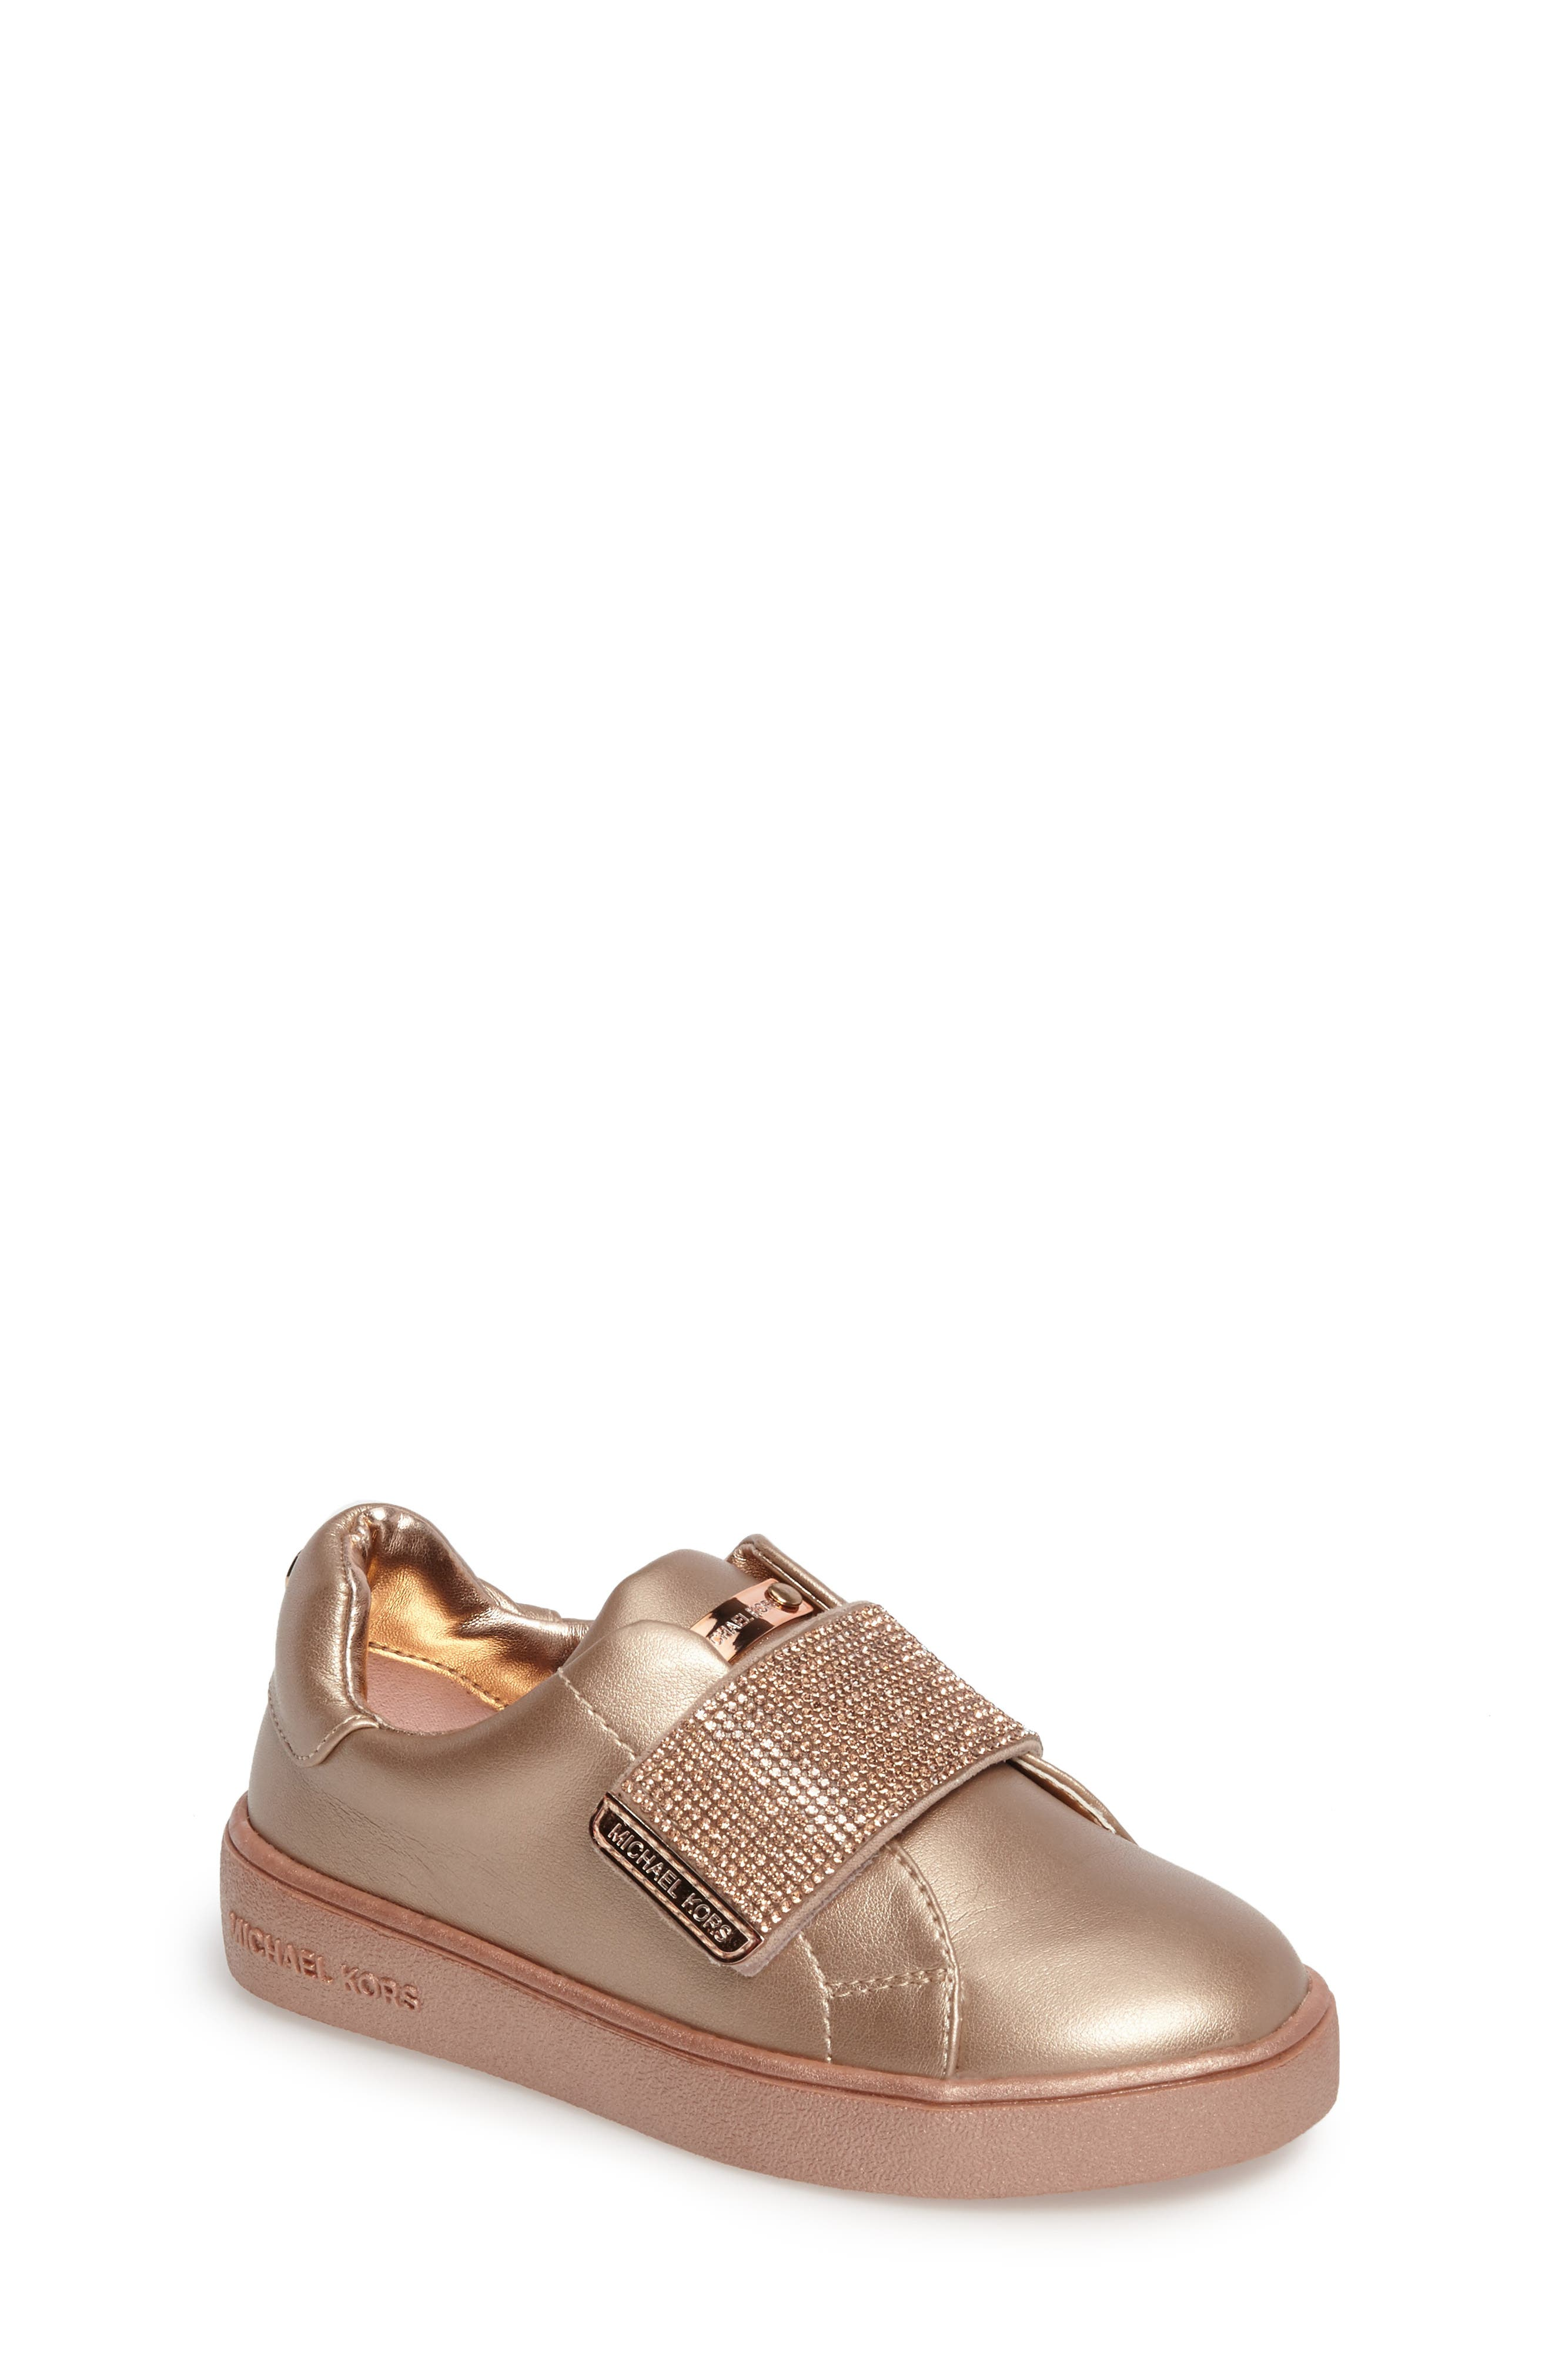 Ivy Candy Sneaker,                             Main thumbnail 2, color,